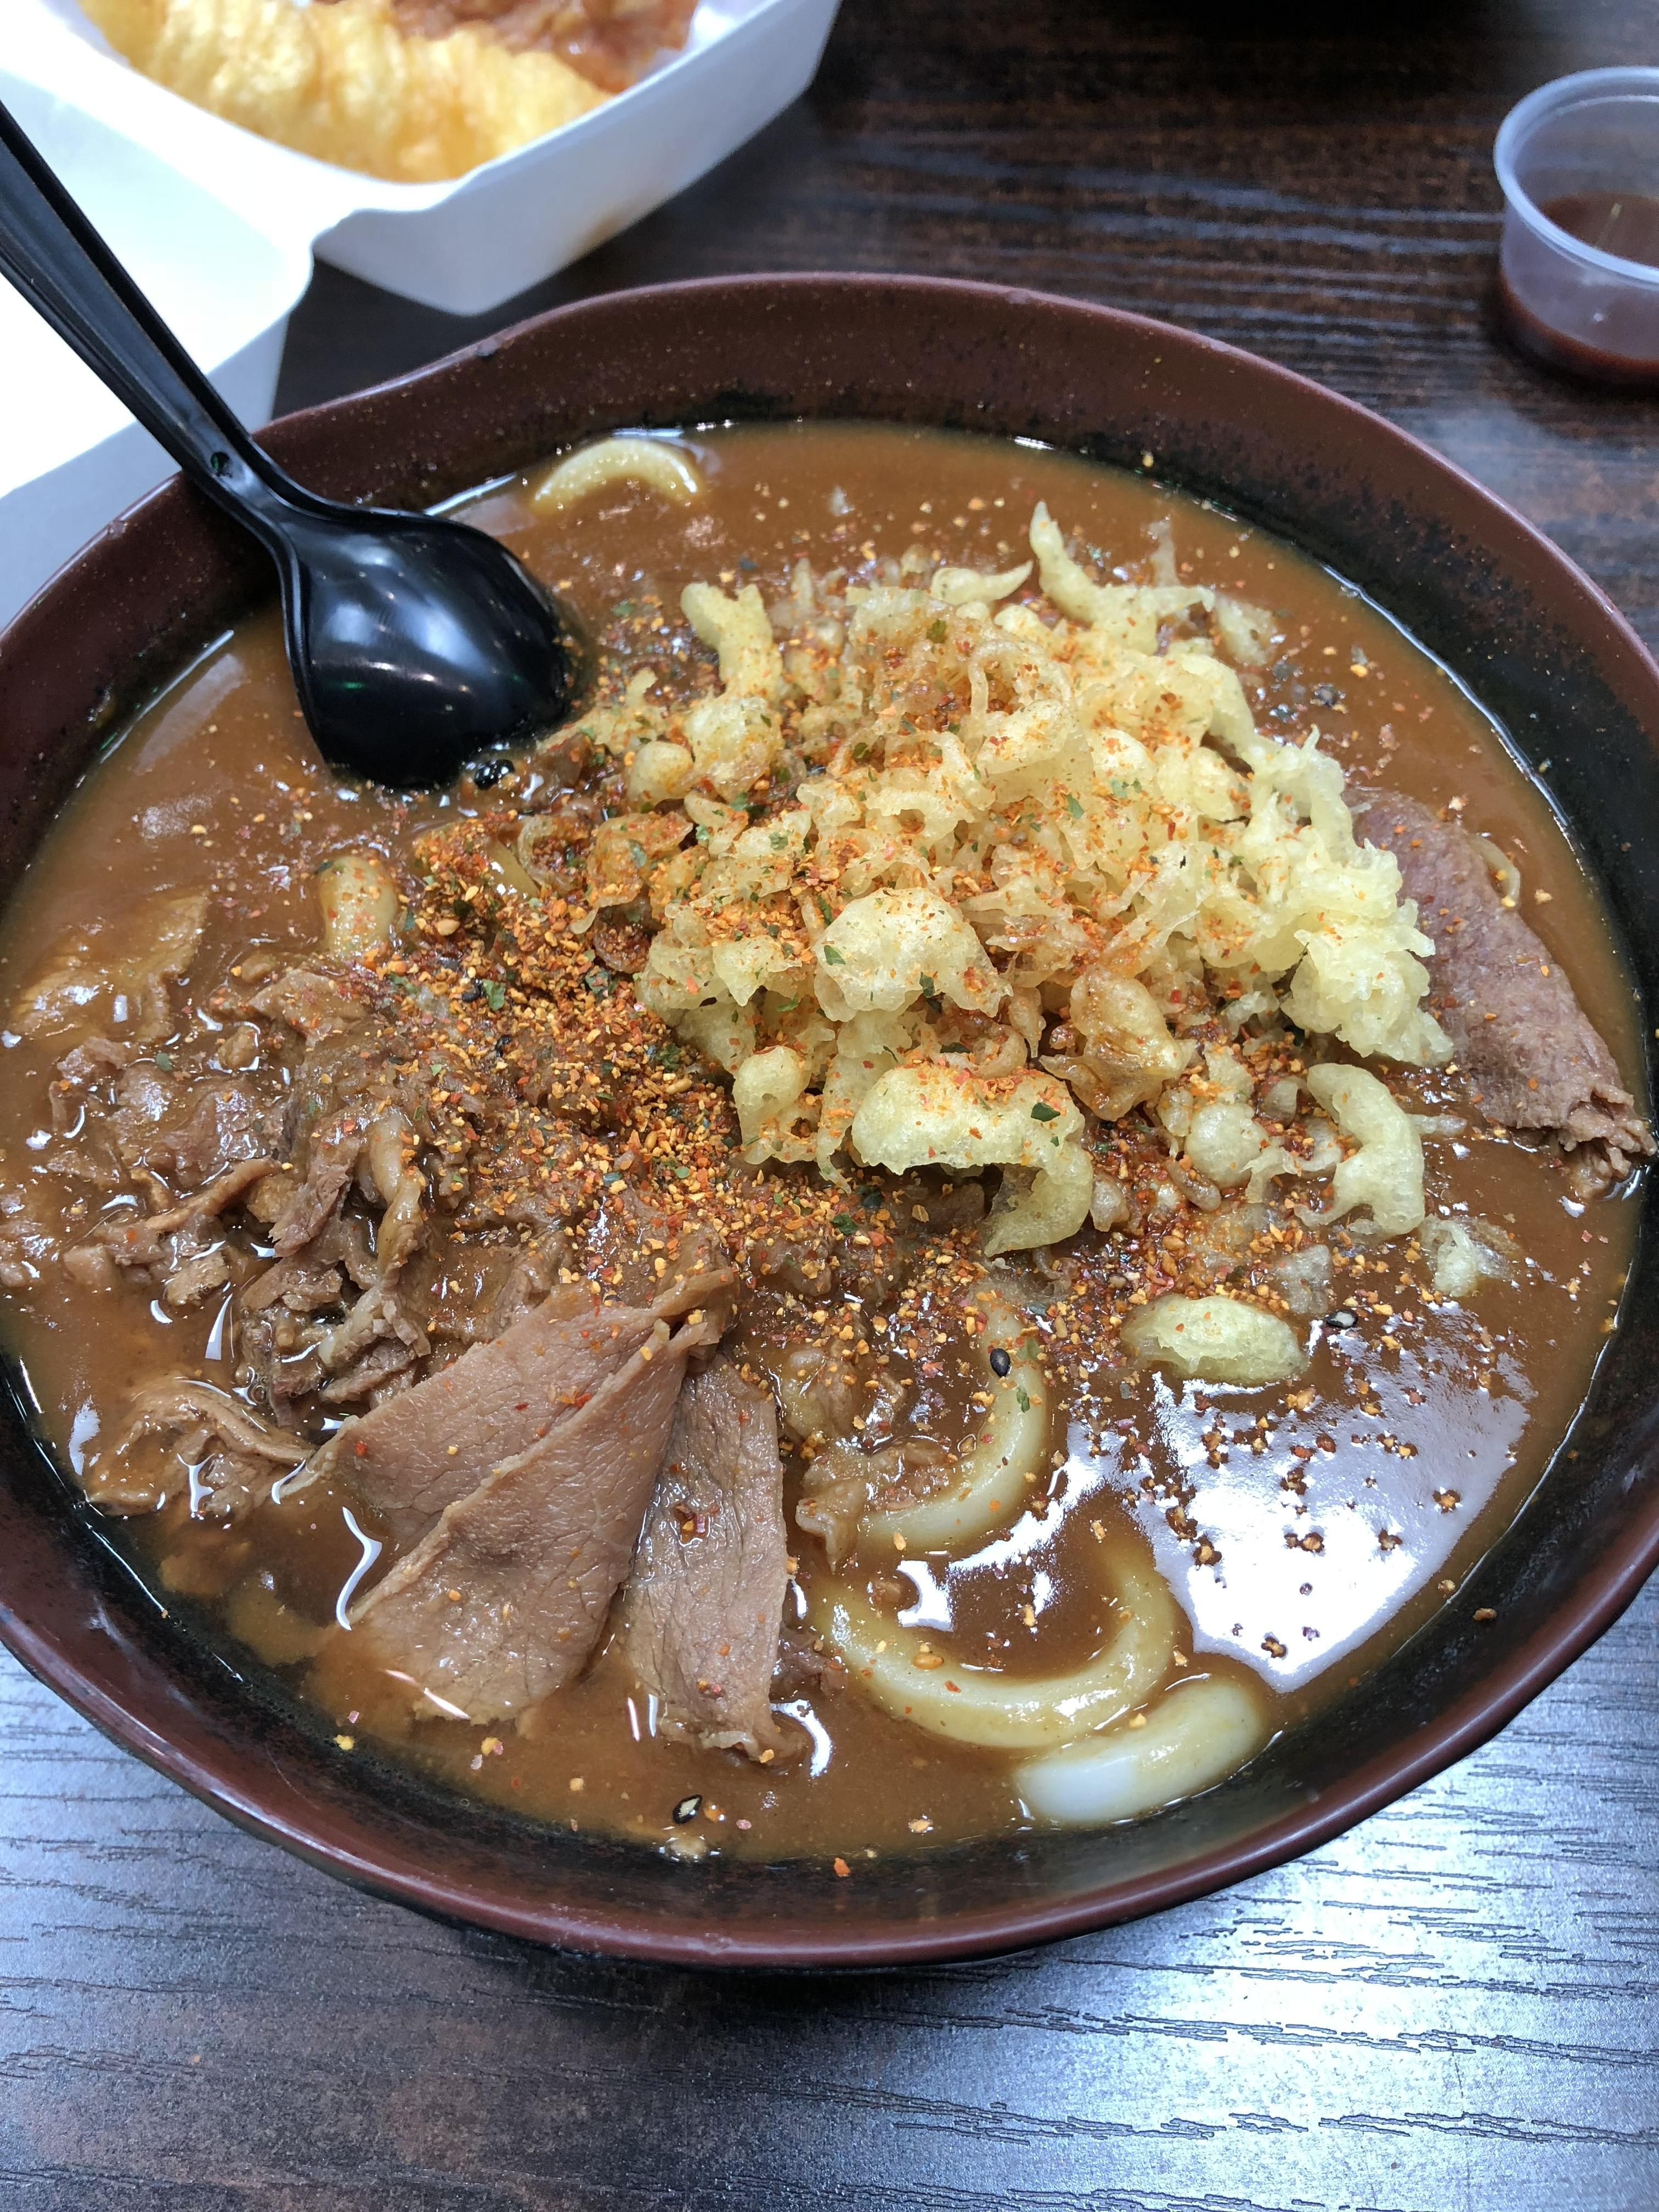 [I Ate] Japanese Beef Curry Udon